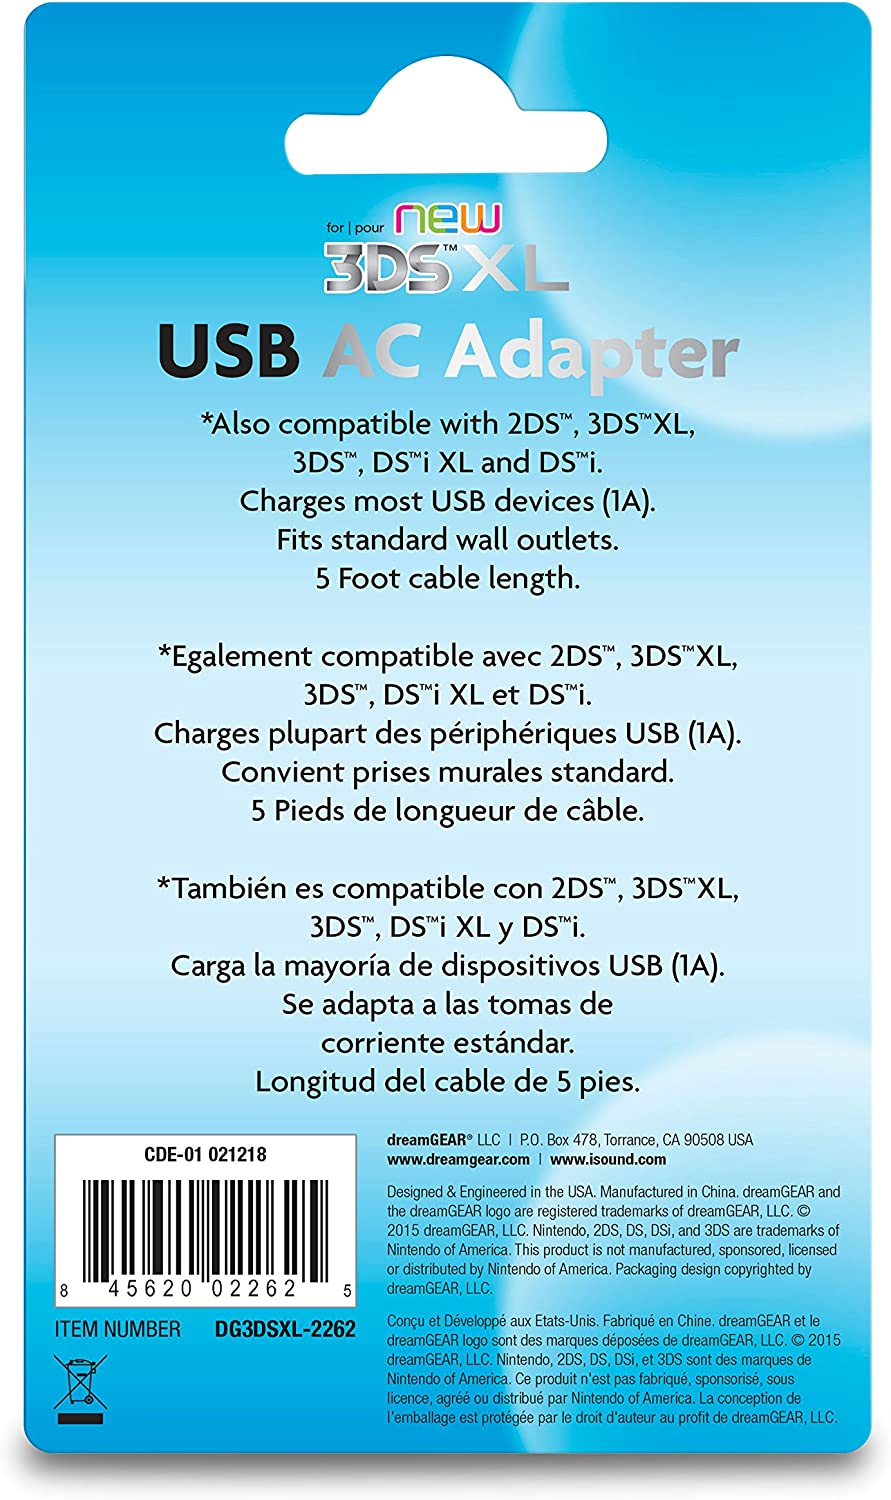 Amazoncom DreamGEAR USB AC Adapter For Your New DS XL And DS - Us zip code nintendo